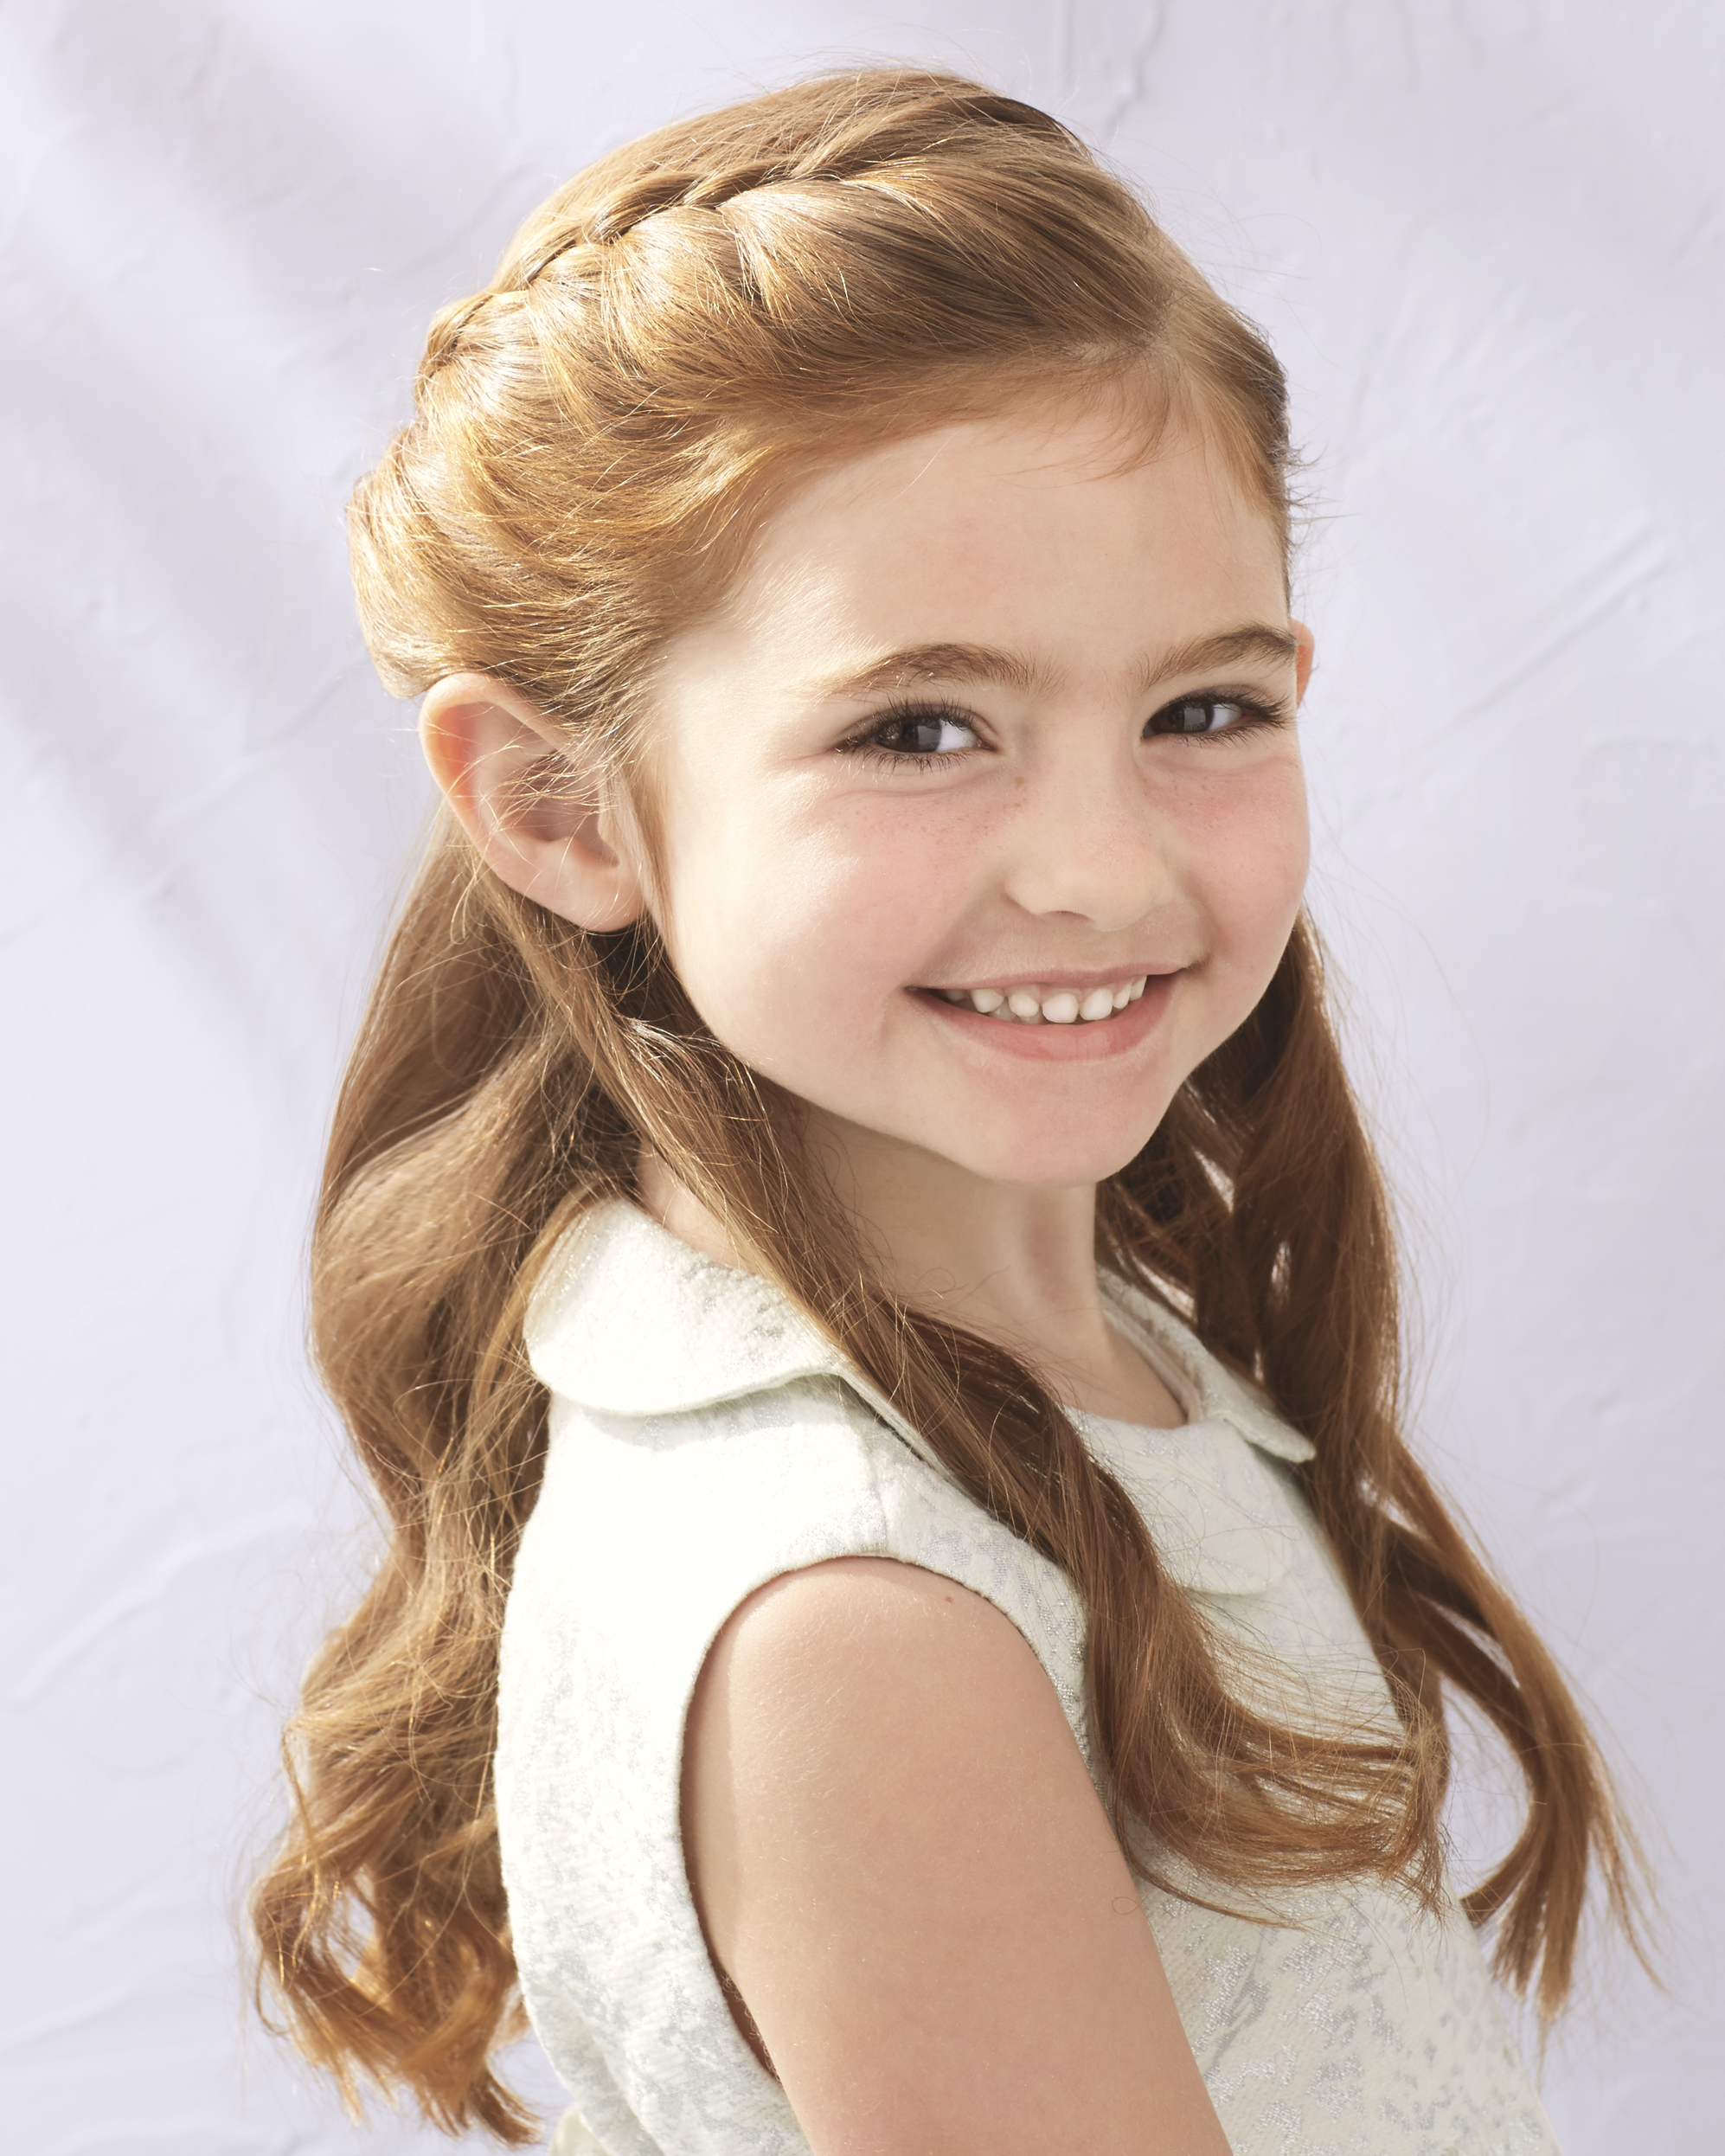 Flower Girl's Braided Half-Up-Half-Down Hairstyle